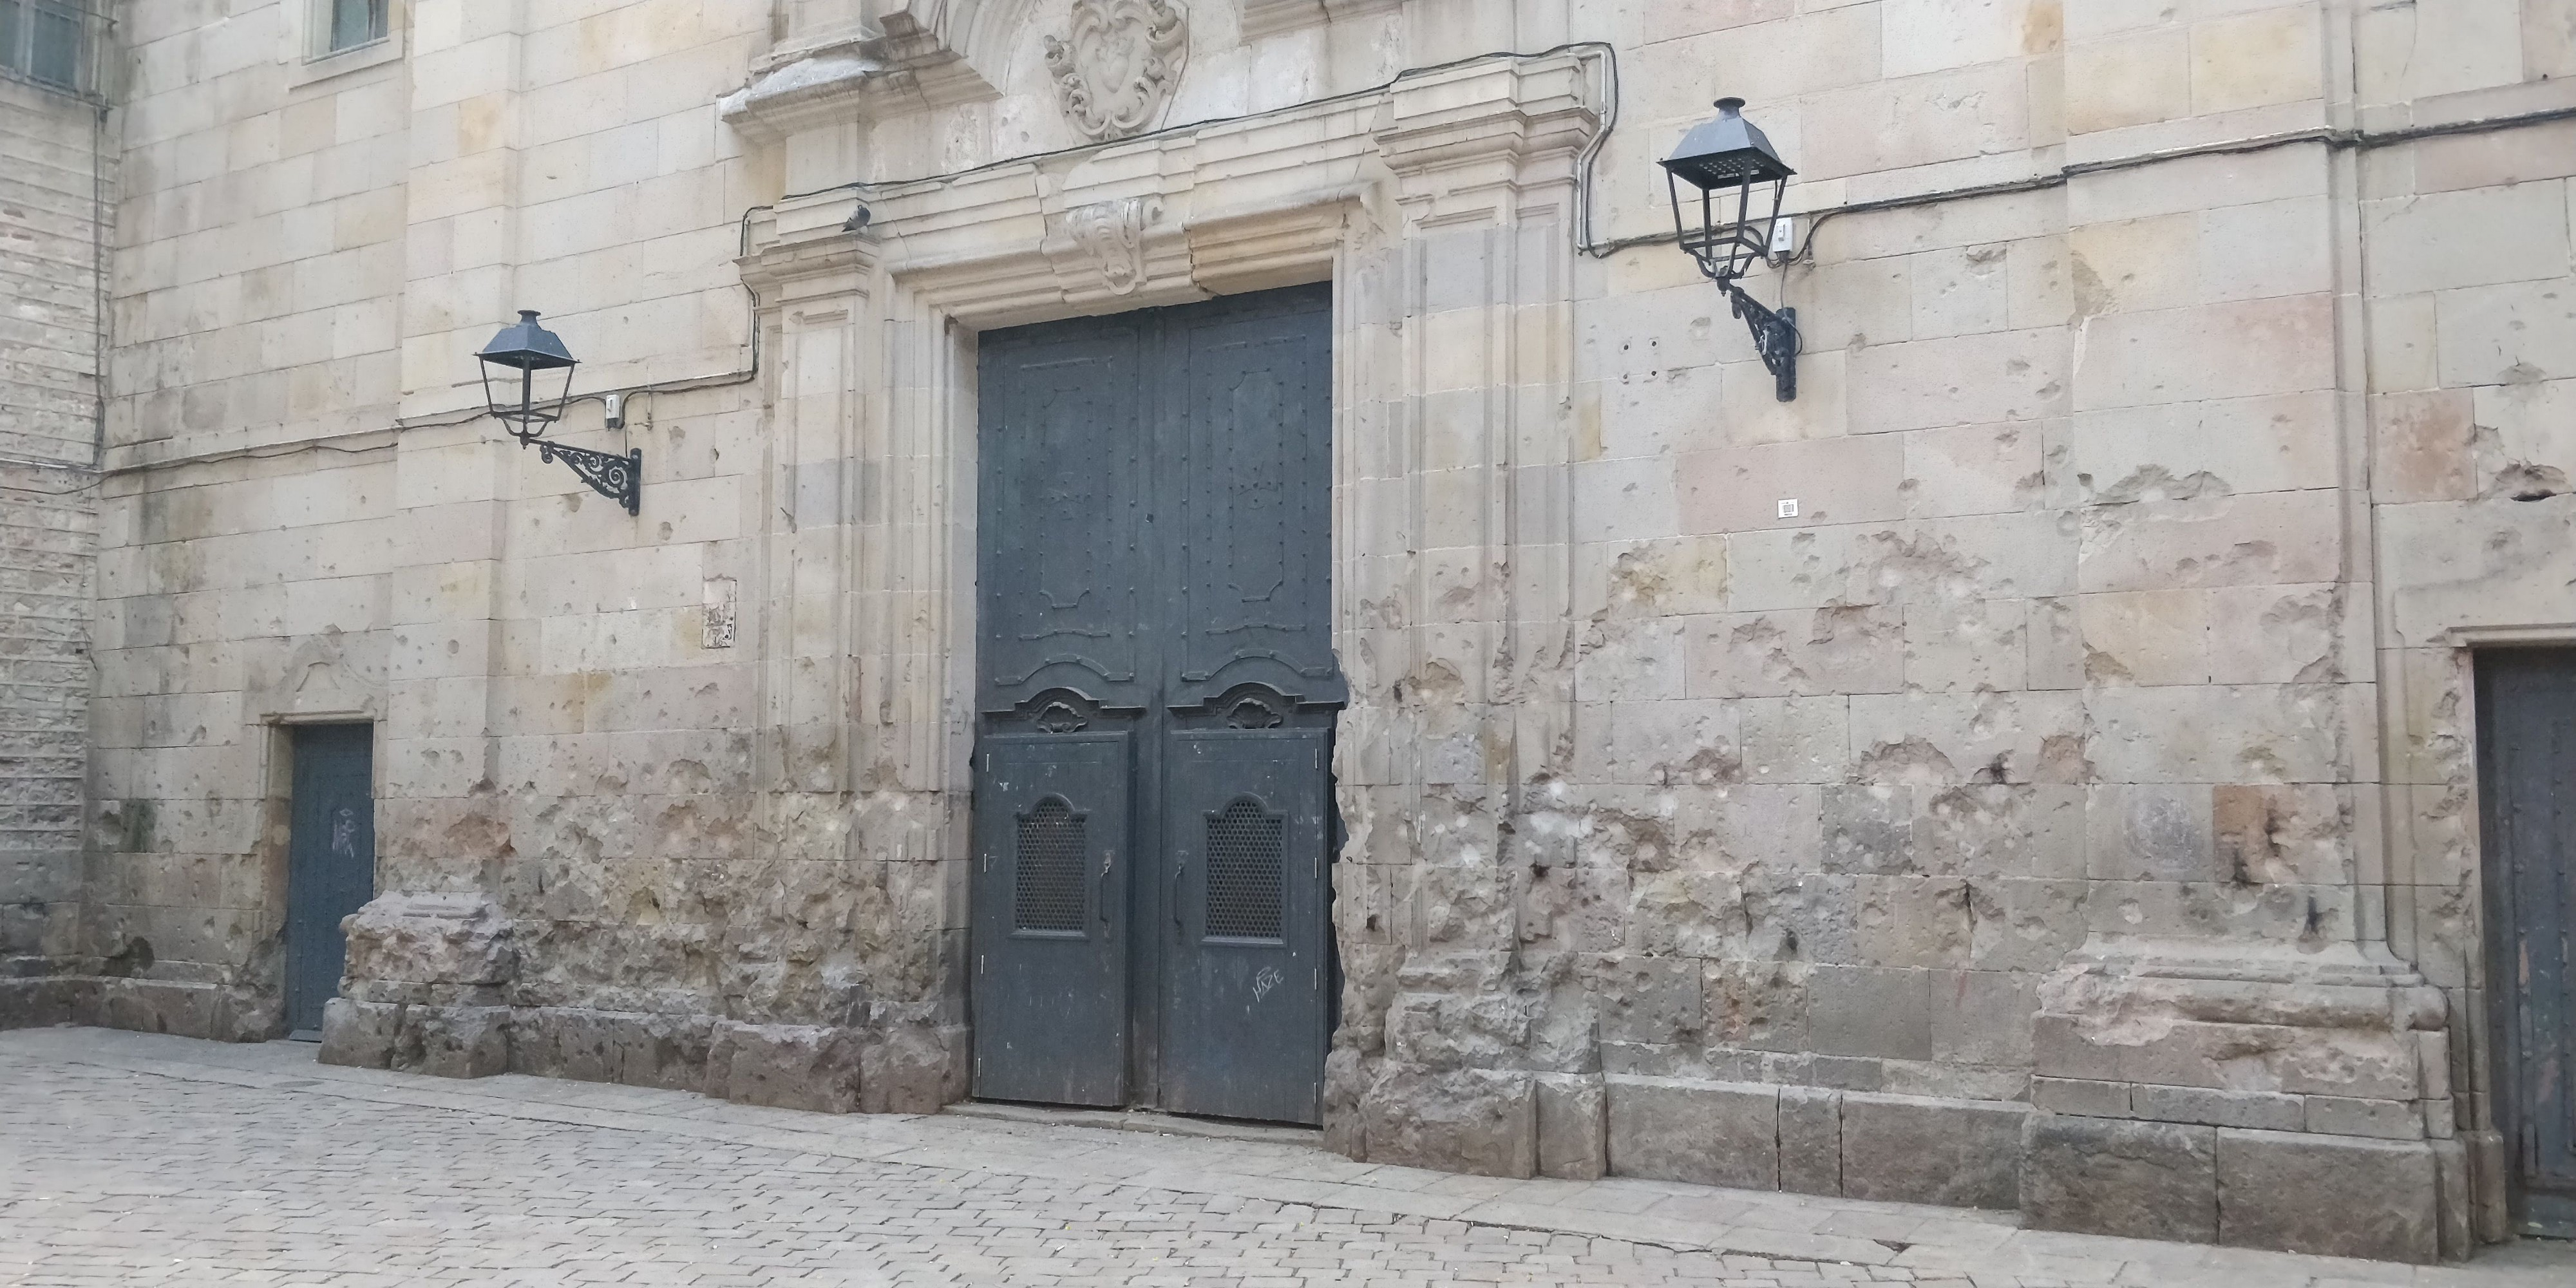 This gorgeous hidden square was the site of a terrible Spanish Civil War tragedy,